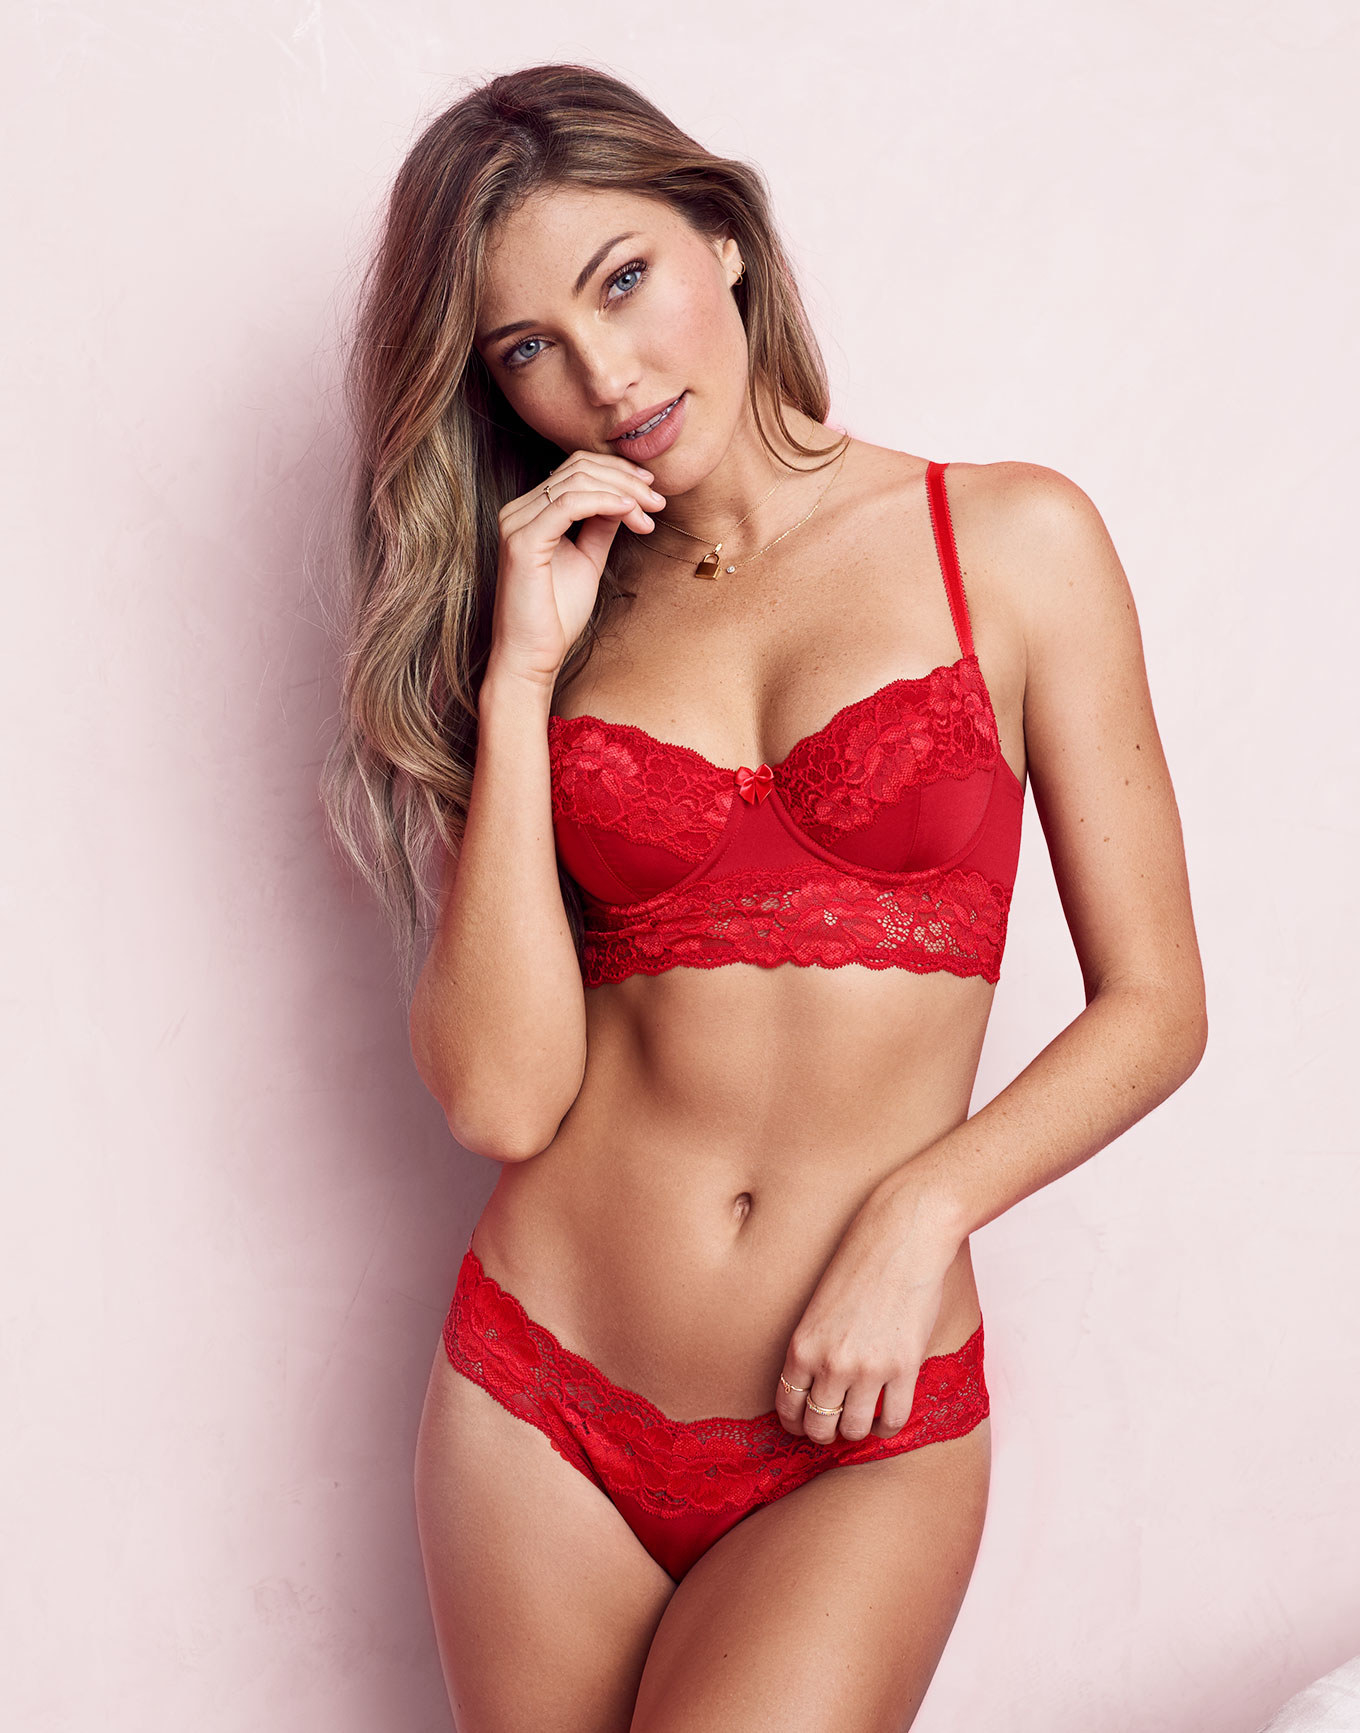 37 Gorgeous Pieces Of Lingerie To Get You Ready For Valentine s Day 9fdaa9e4d